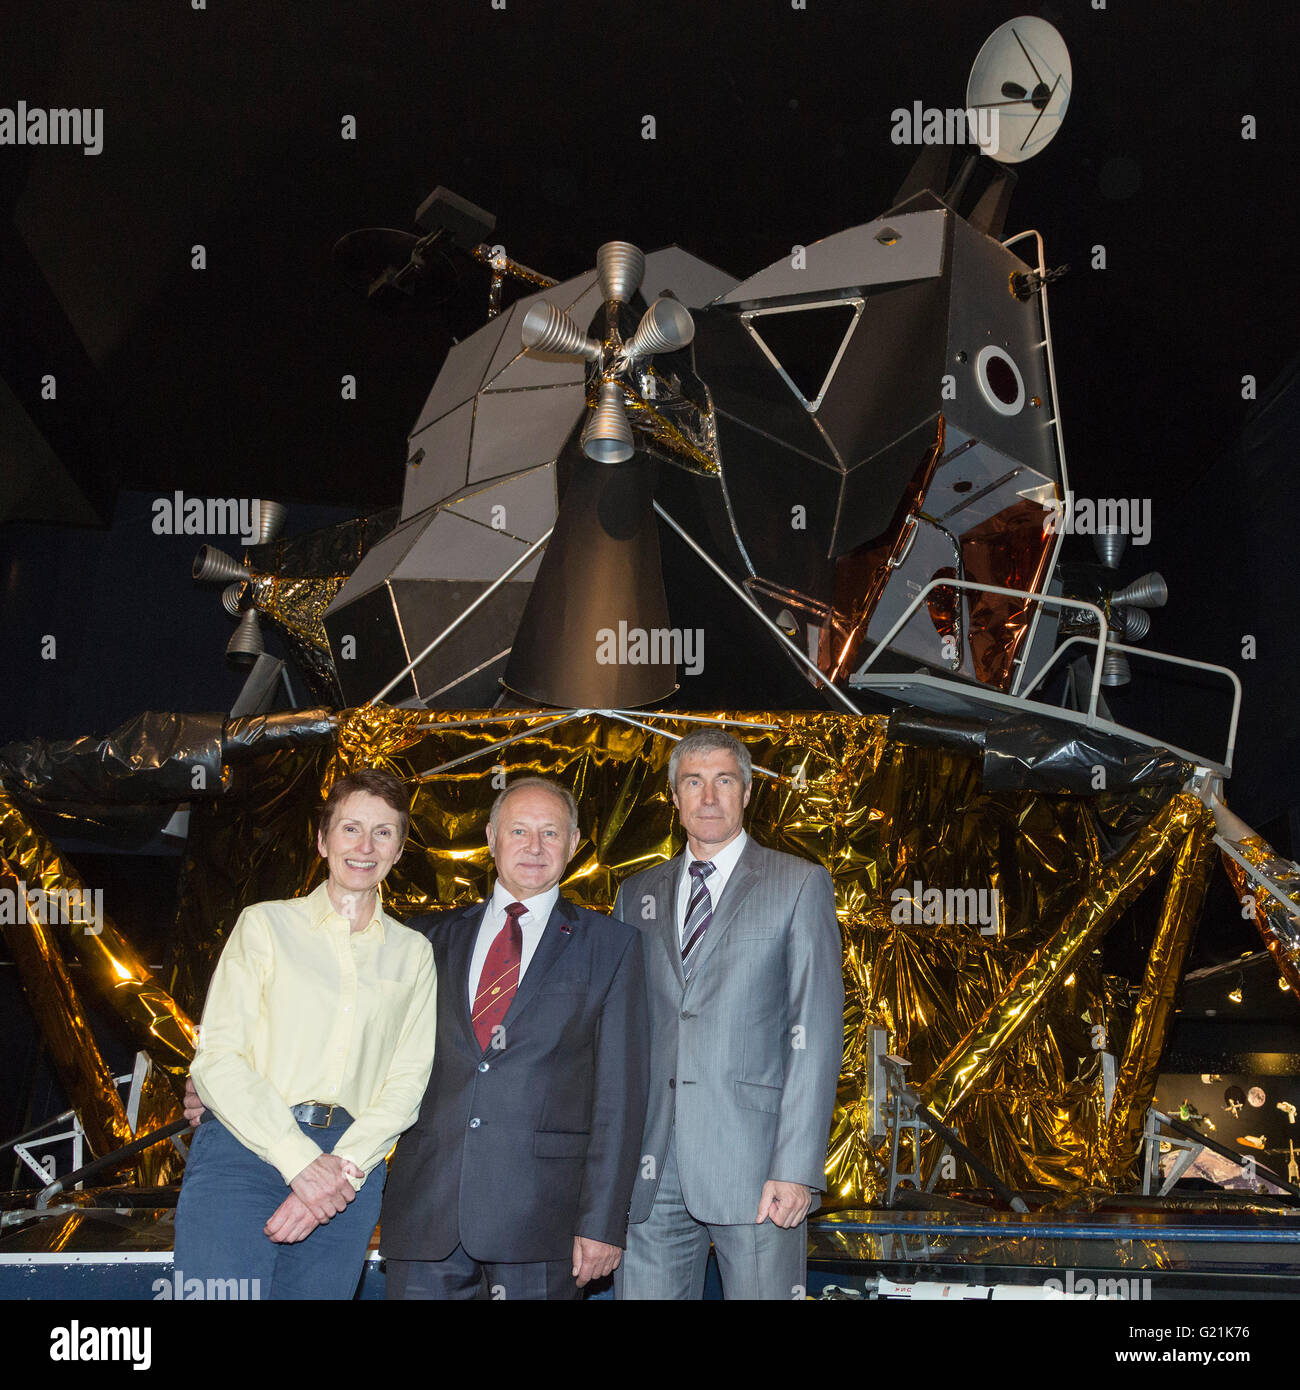 London, UK. 20 May 2016. L-R: Helen Sharman, Anatoli Artsebarski and Sergei Krikalev. Helen Sharman celebrates 25 - Stock Image